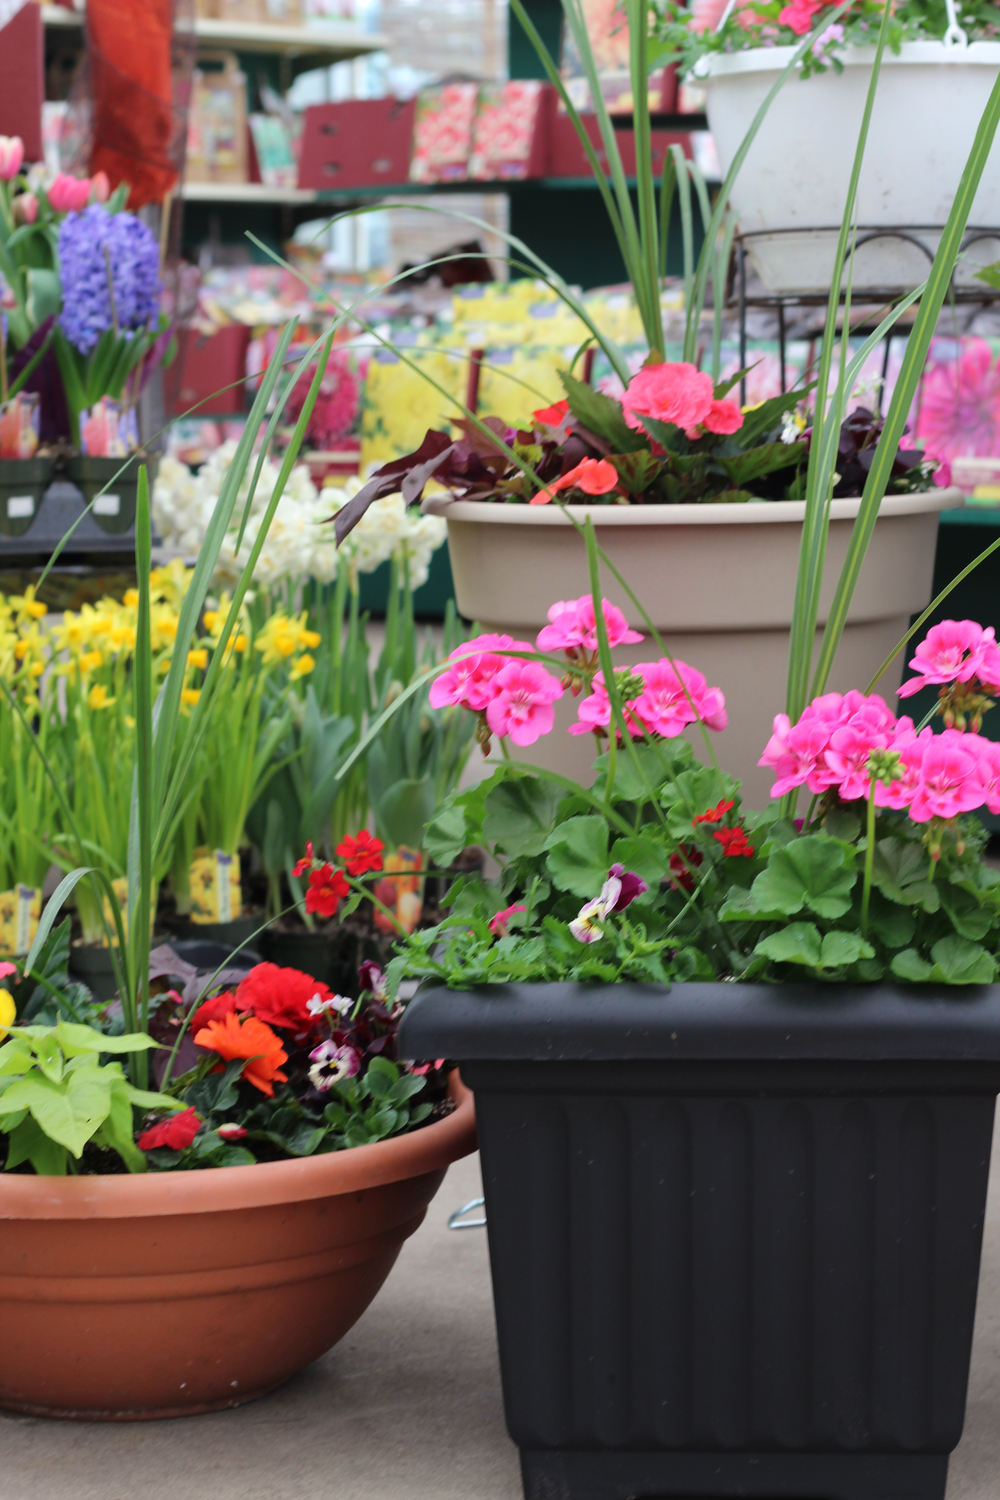 Container gardening offers a very versatile and low-maintenance option for gardening enthusiasts.